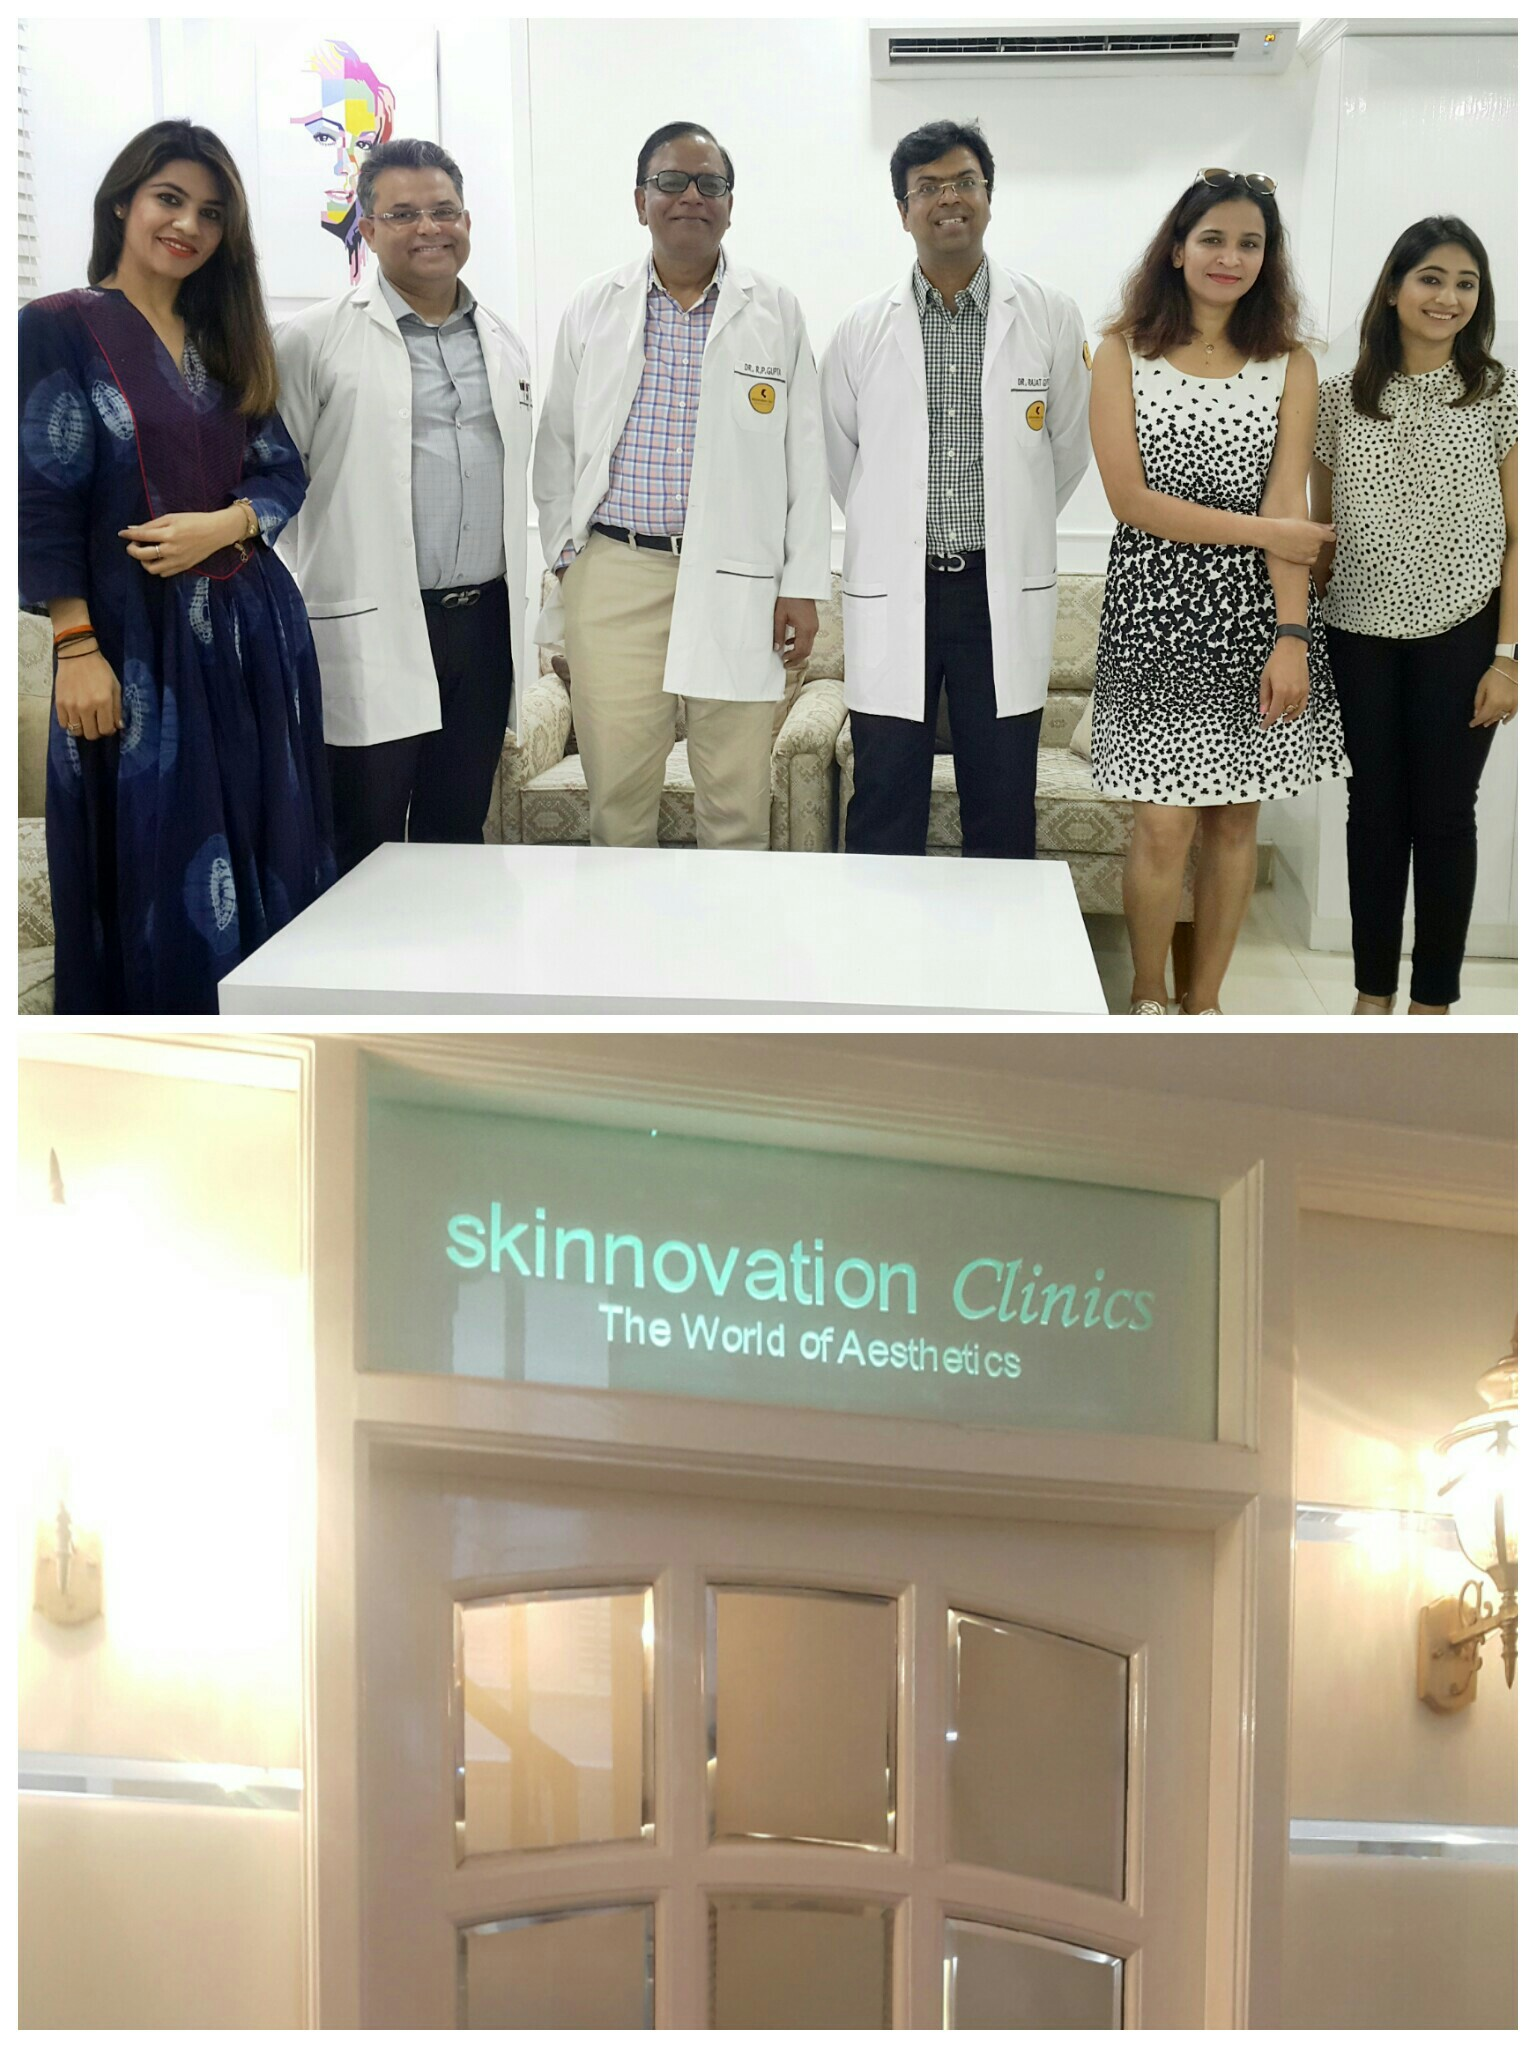 skinnovation, dermatology, skincare, lifestyle, colossal closet, laser treatment, hair removal, laser hair removal, acne treatment, alma lasers